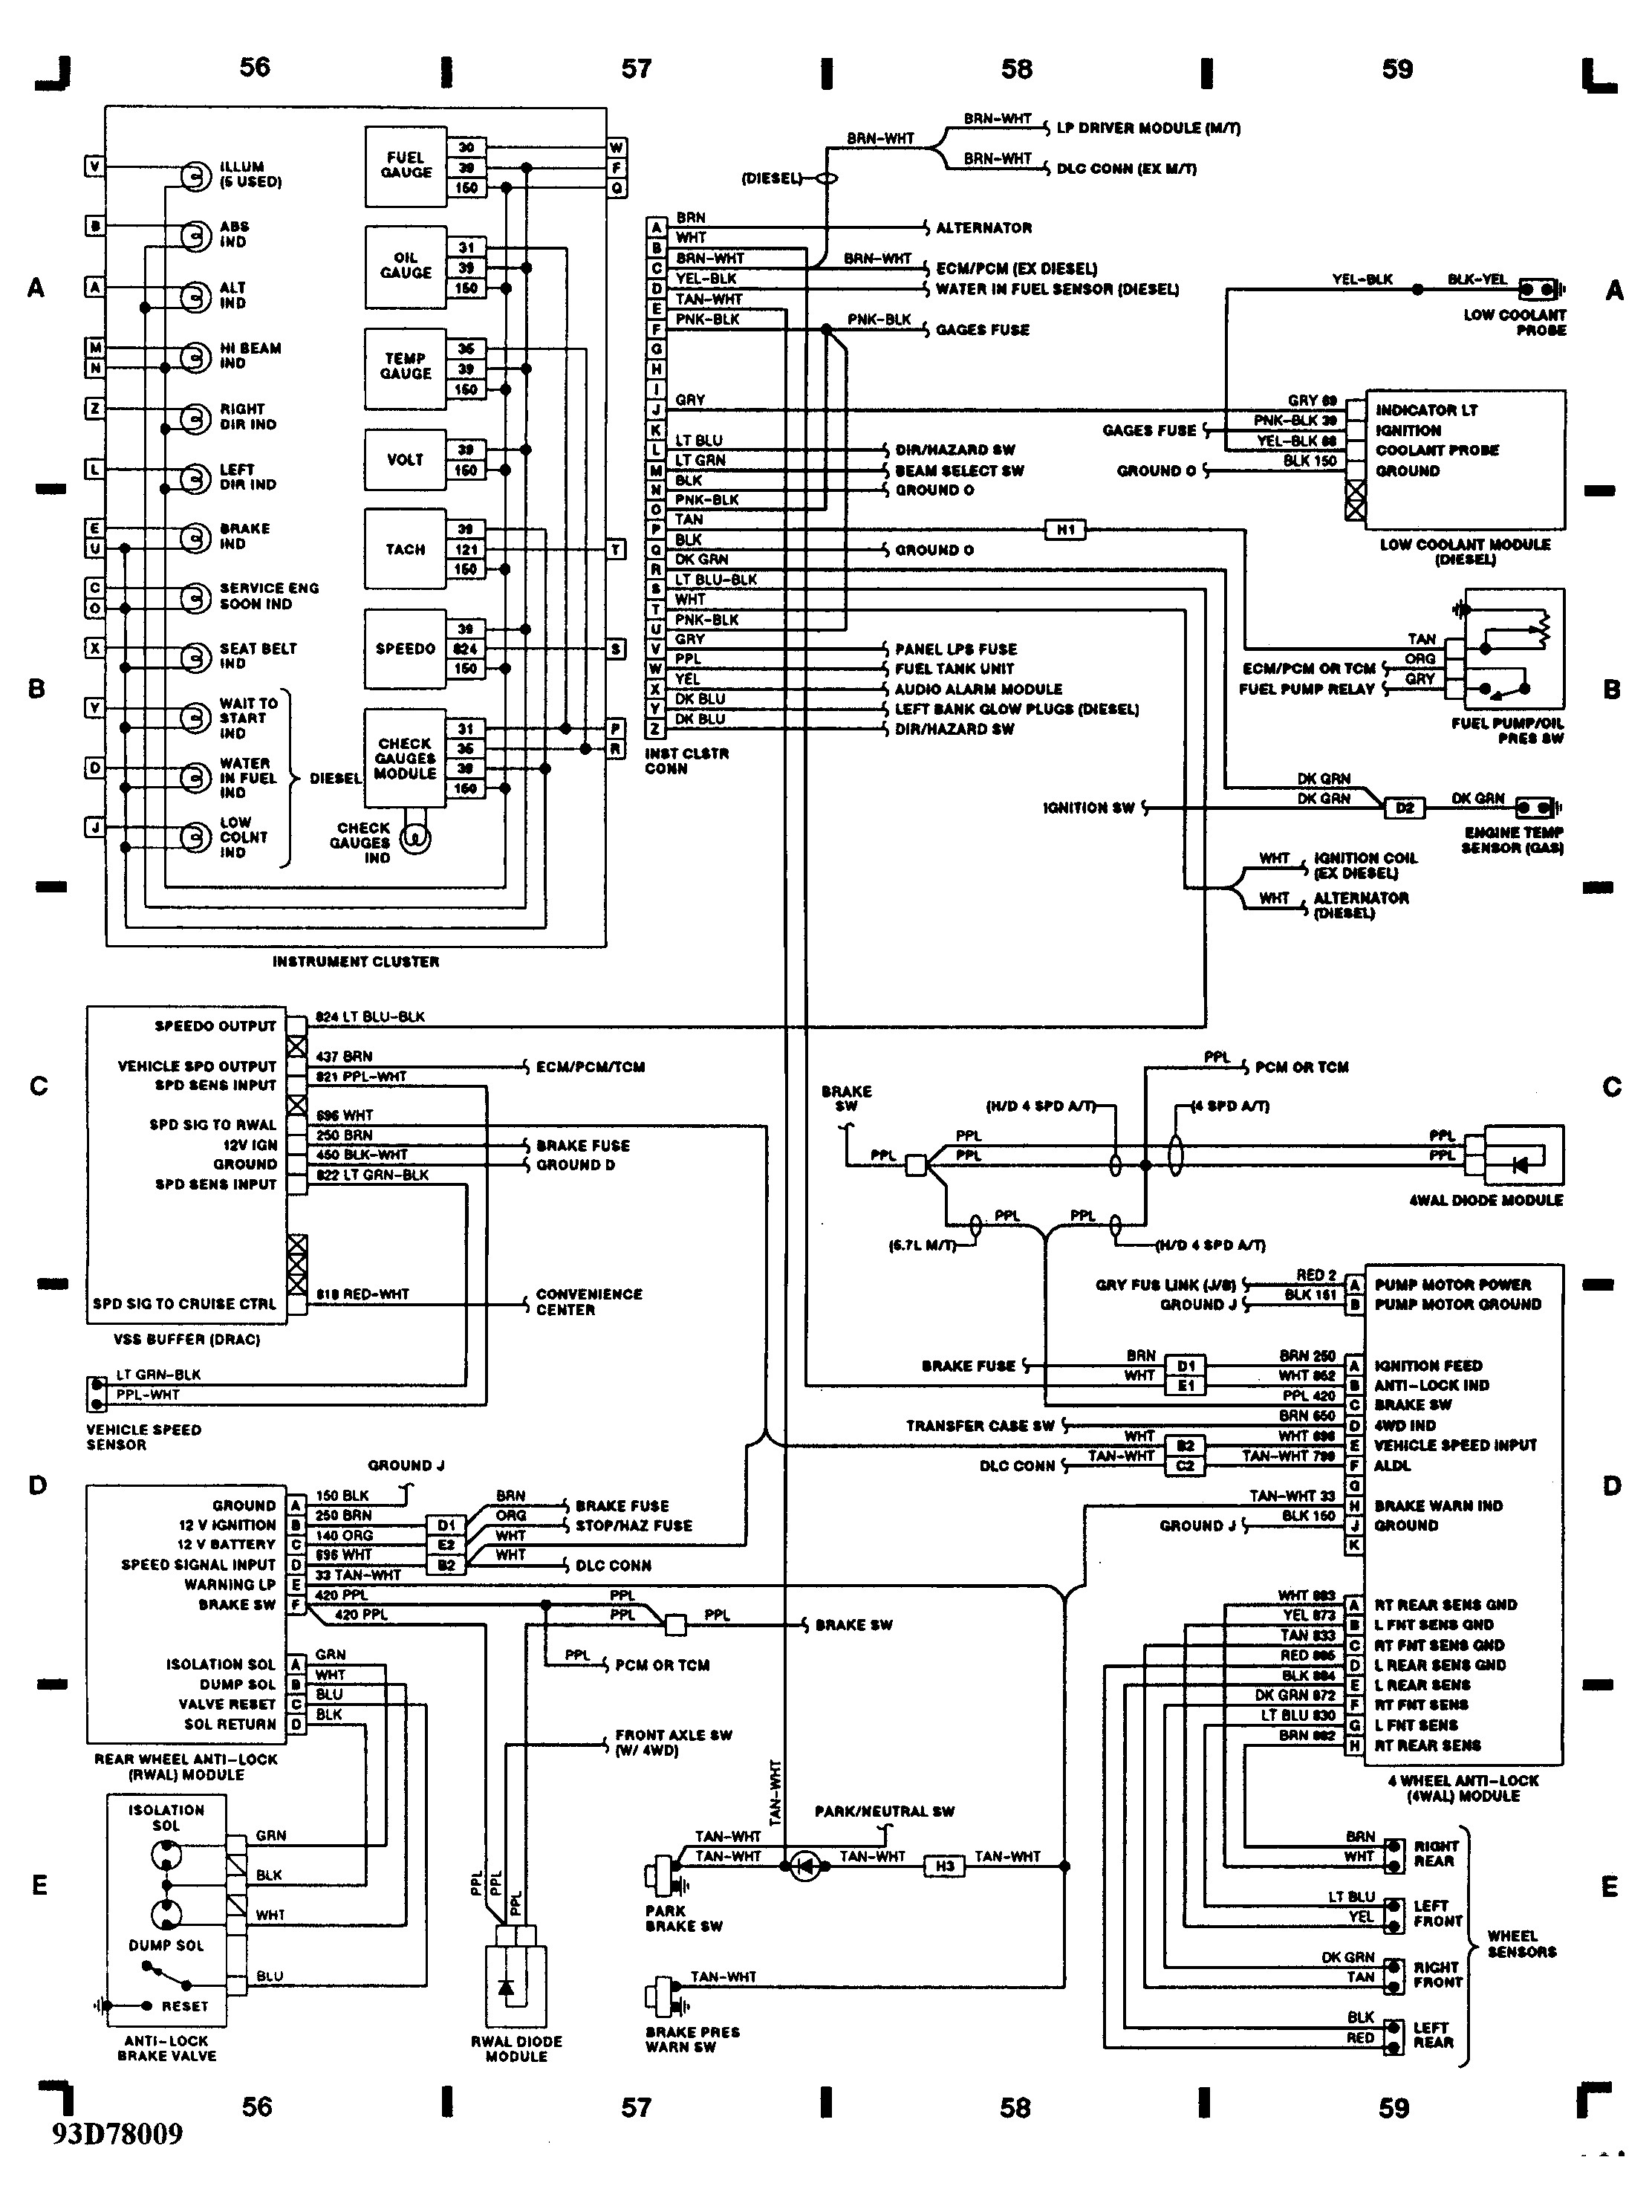 1995 Chevy Silverado 5 7 Wiring Diagram Diagram Base